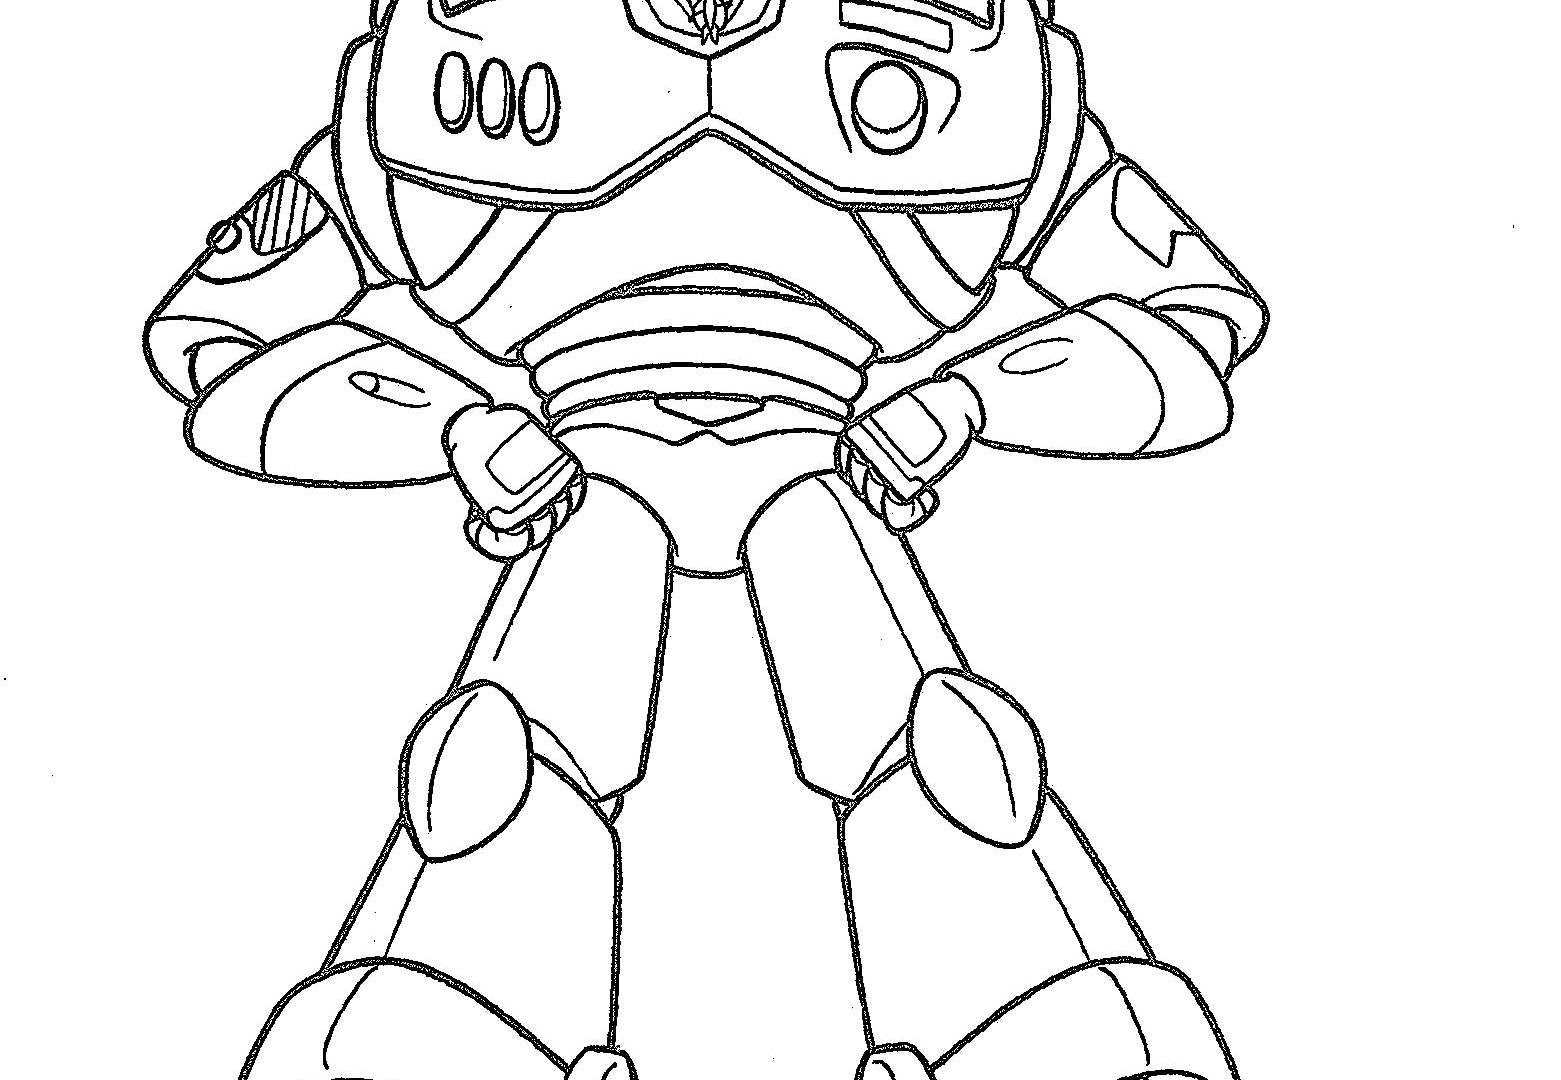 The Best Free Lightyear Coloring Page Images Download